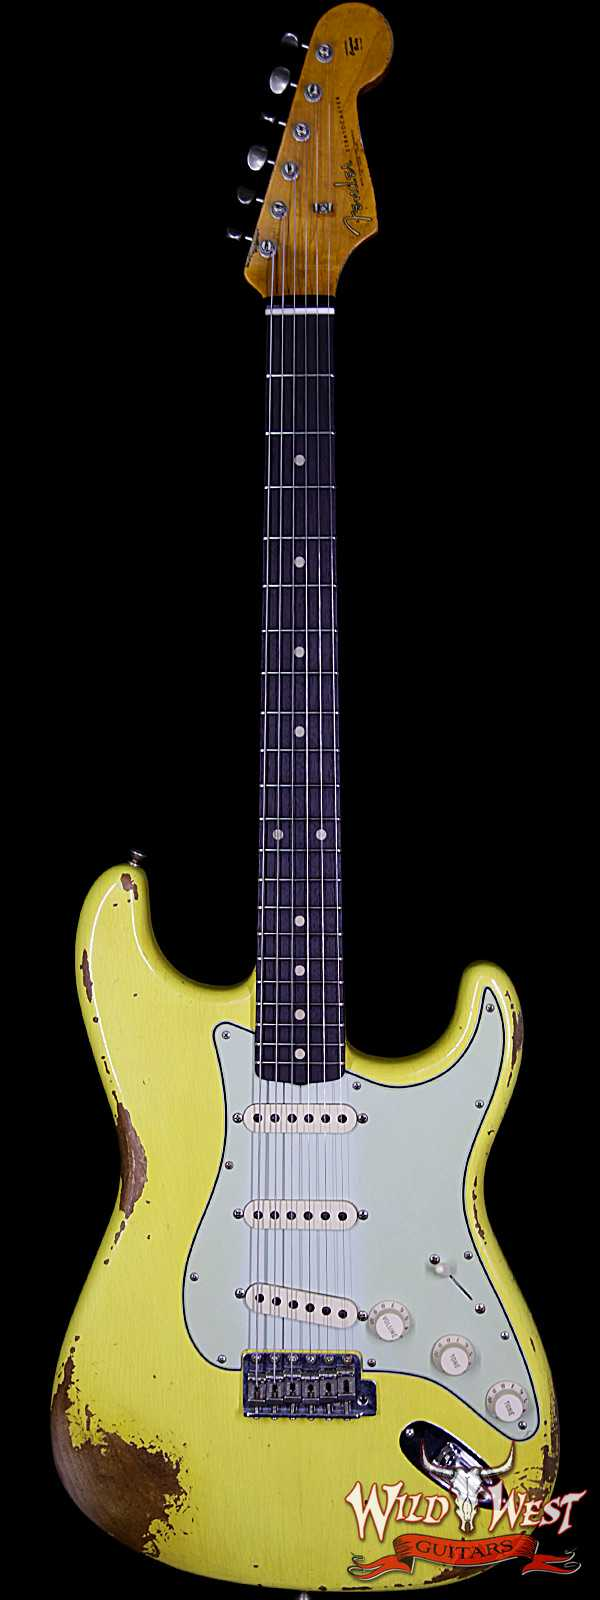 Fender Custom Shop 1961 Stratocaster Heavy Relic AAA Rosewood Fingerboard Graffiti Yellow